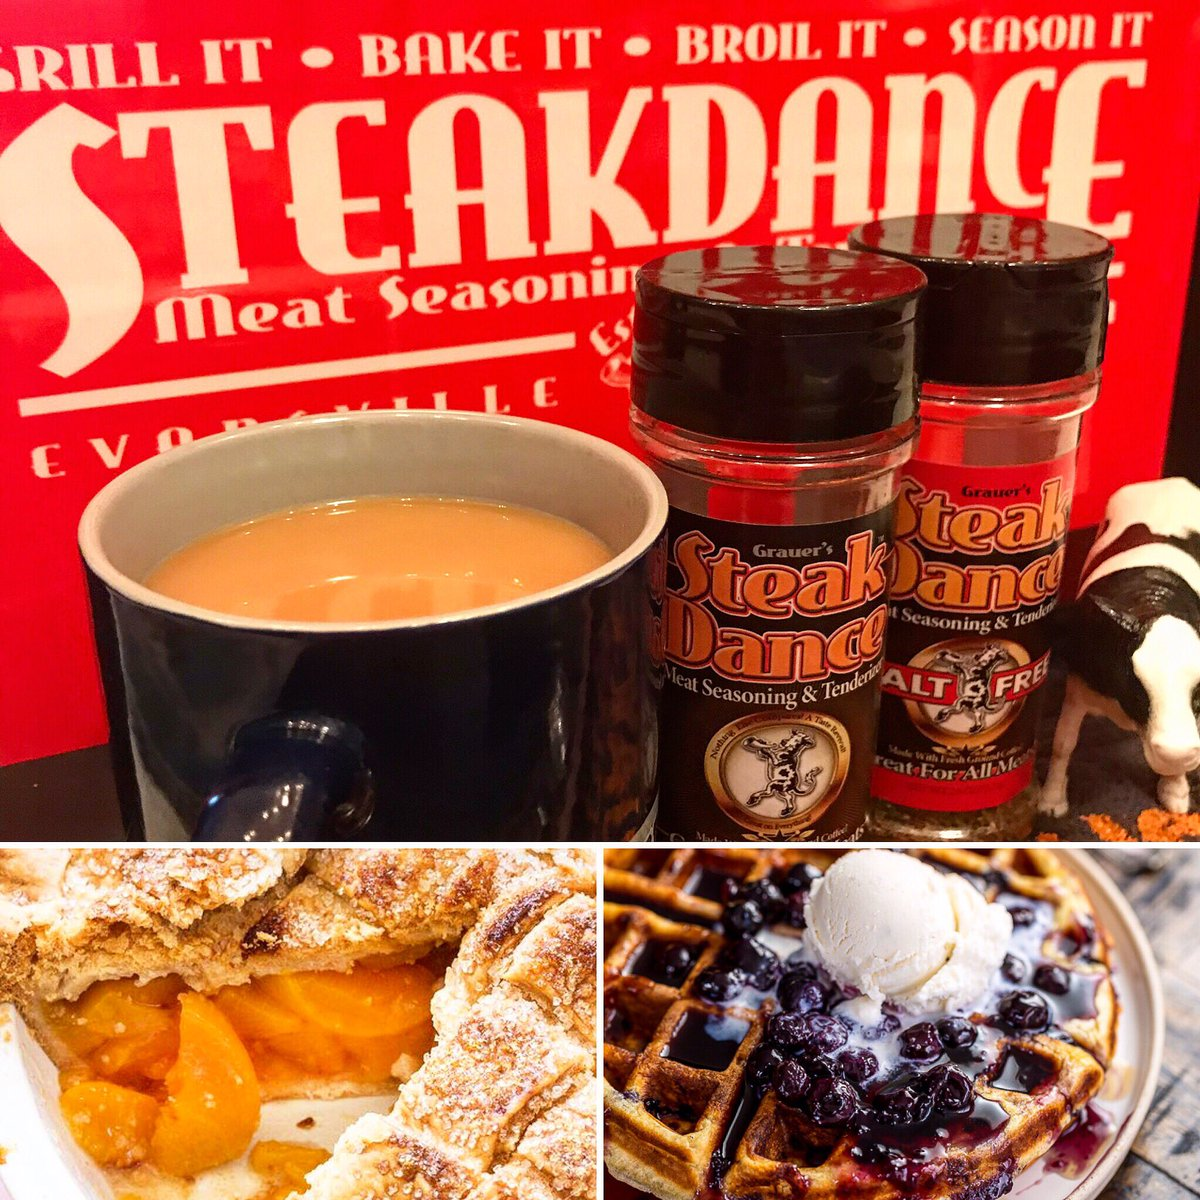 Good morning everyone and welcome to the weekend, what are you going to the steak dance today? It's also national peach pie and waffles day. Hope you have a great weekend. #PeachPie #Waffles #Breakfast #Coffee #SteakDance #Grill #Bake #Broil #Season #SteakDanceFamily https://t.co/lctRBMdy3b